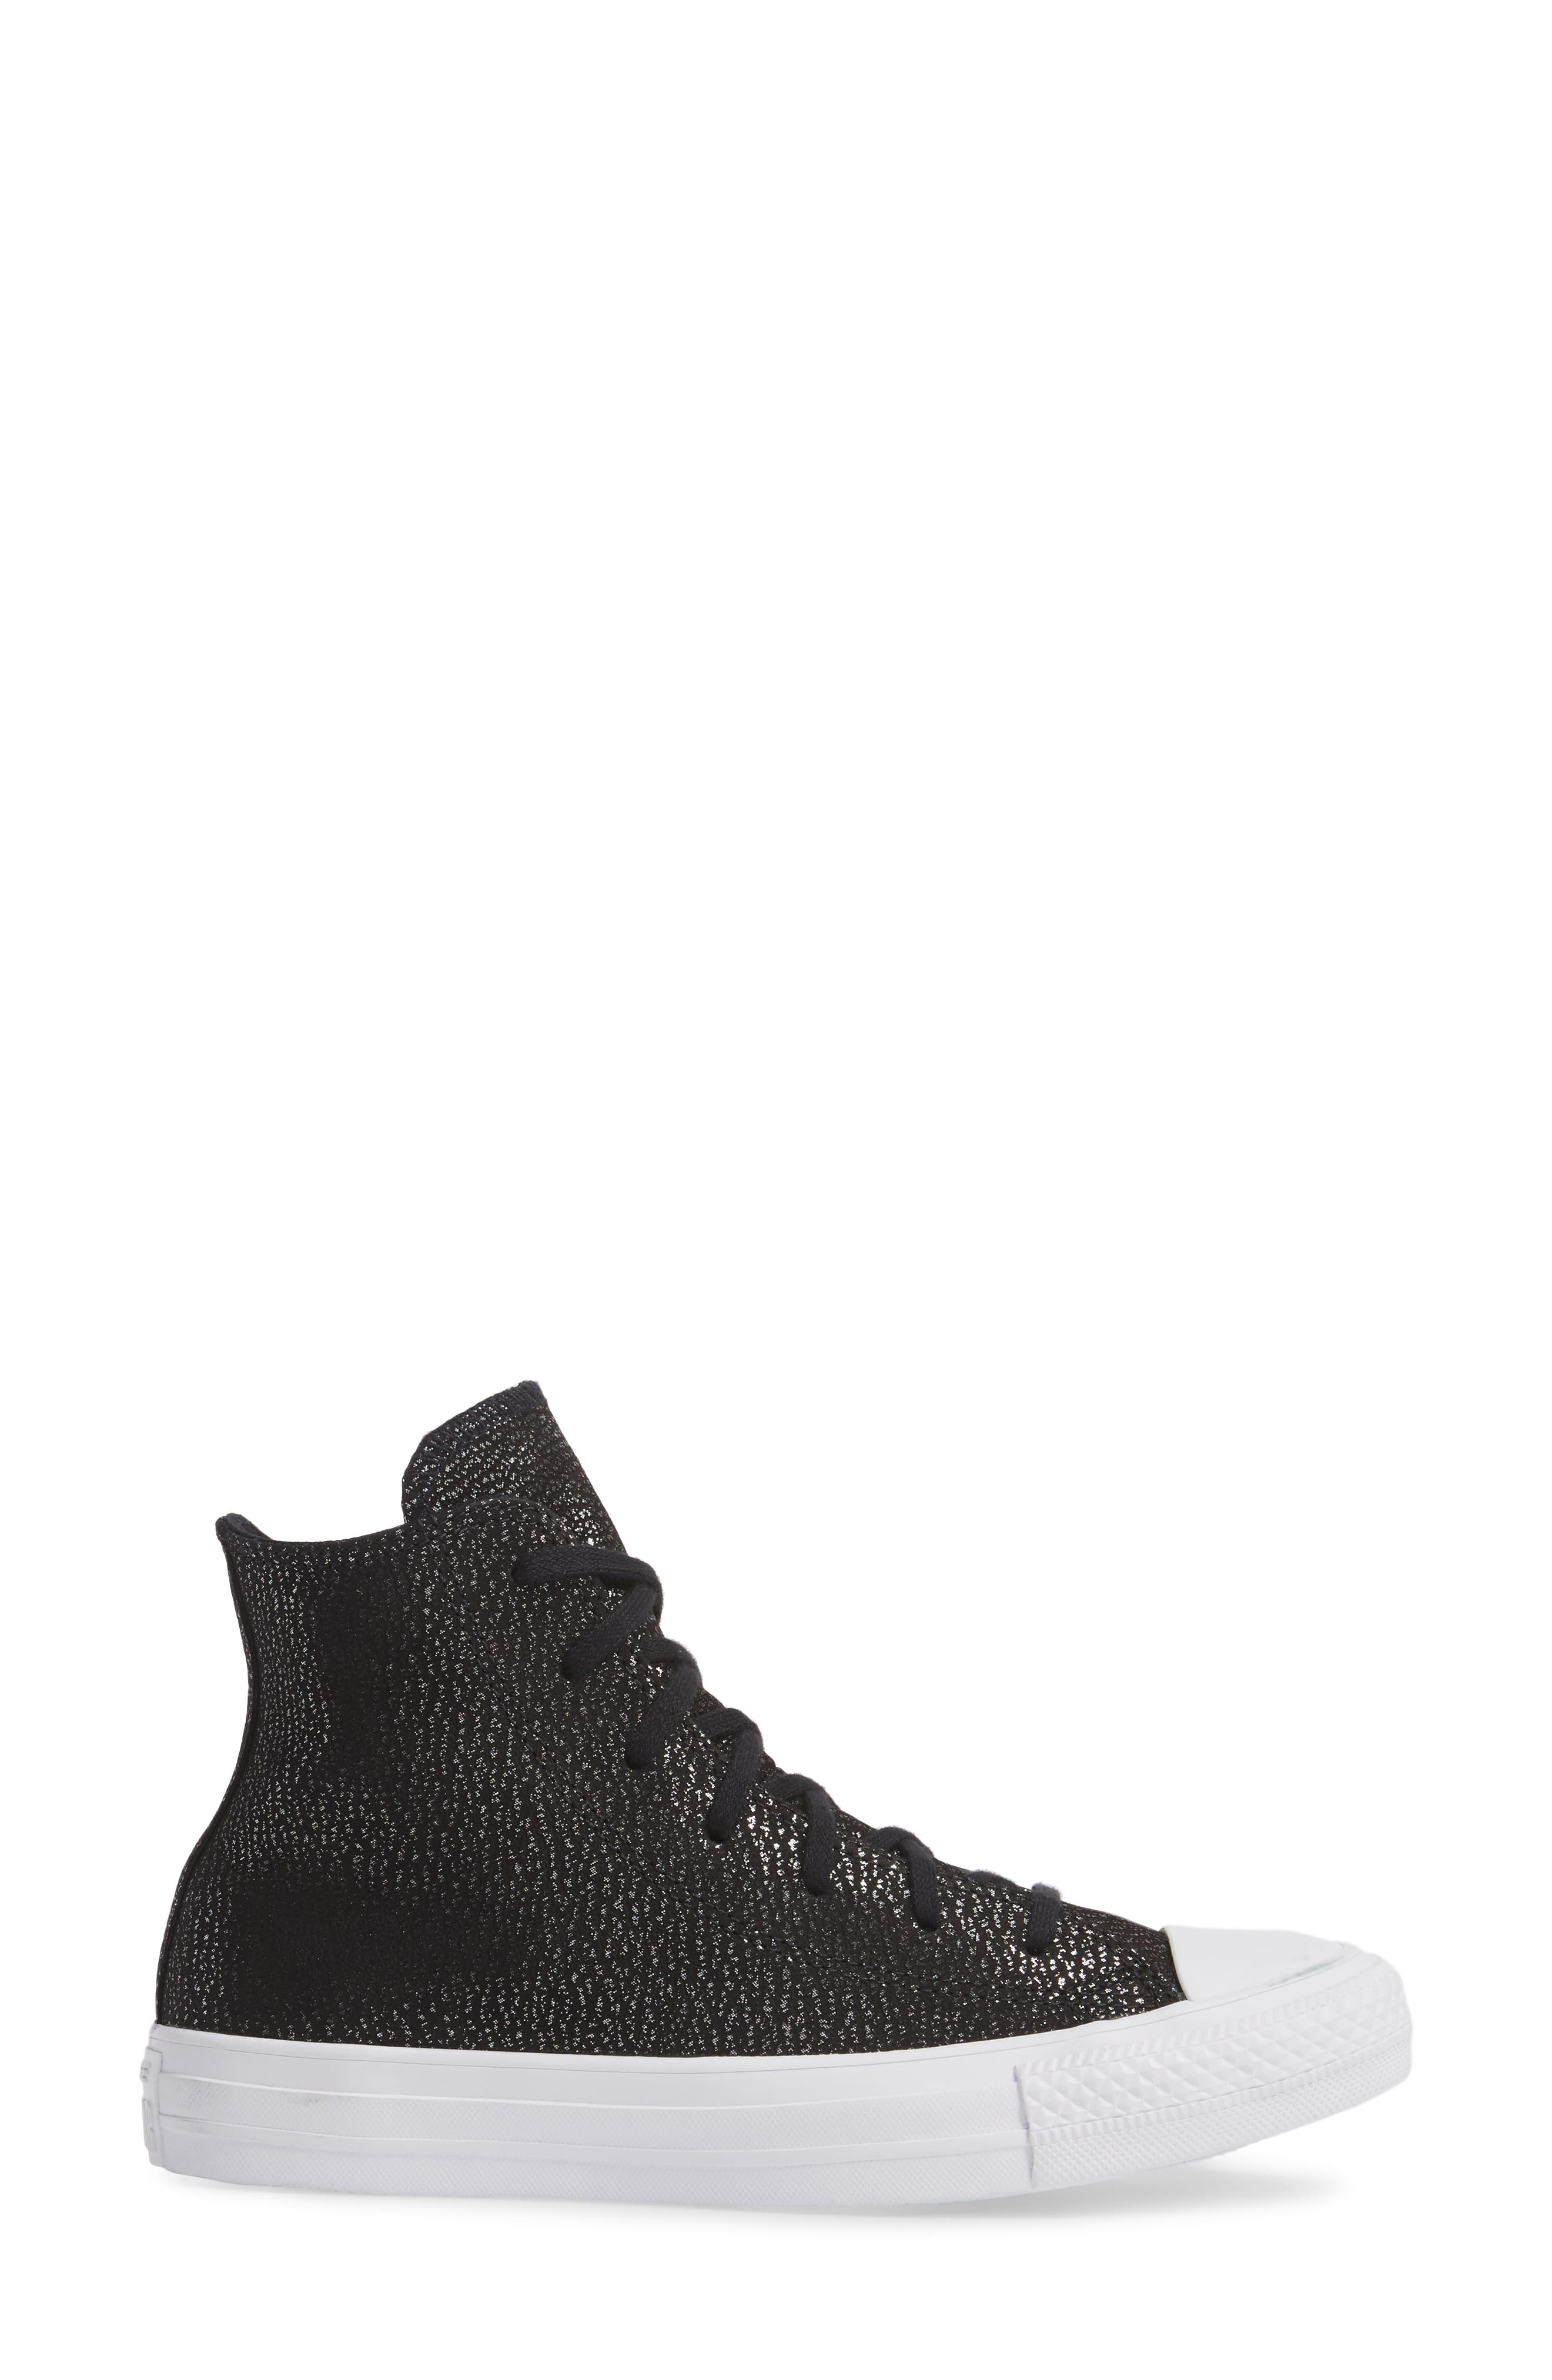 Chuck Taylor<sup>®</sup> All Star<sup>®</sup> Tipped Metallic High Top Sneaker,                             Alternate thumbnail 3, color,                             Black